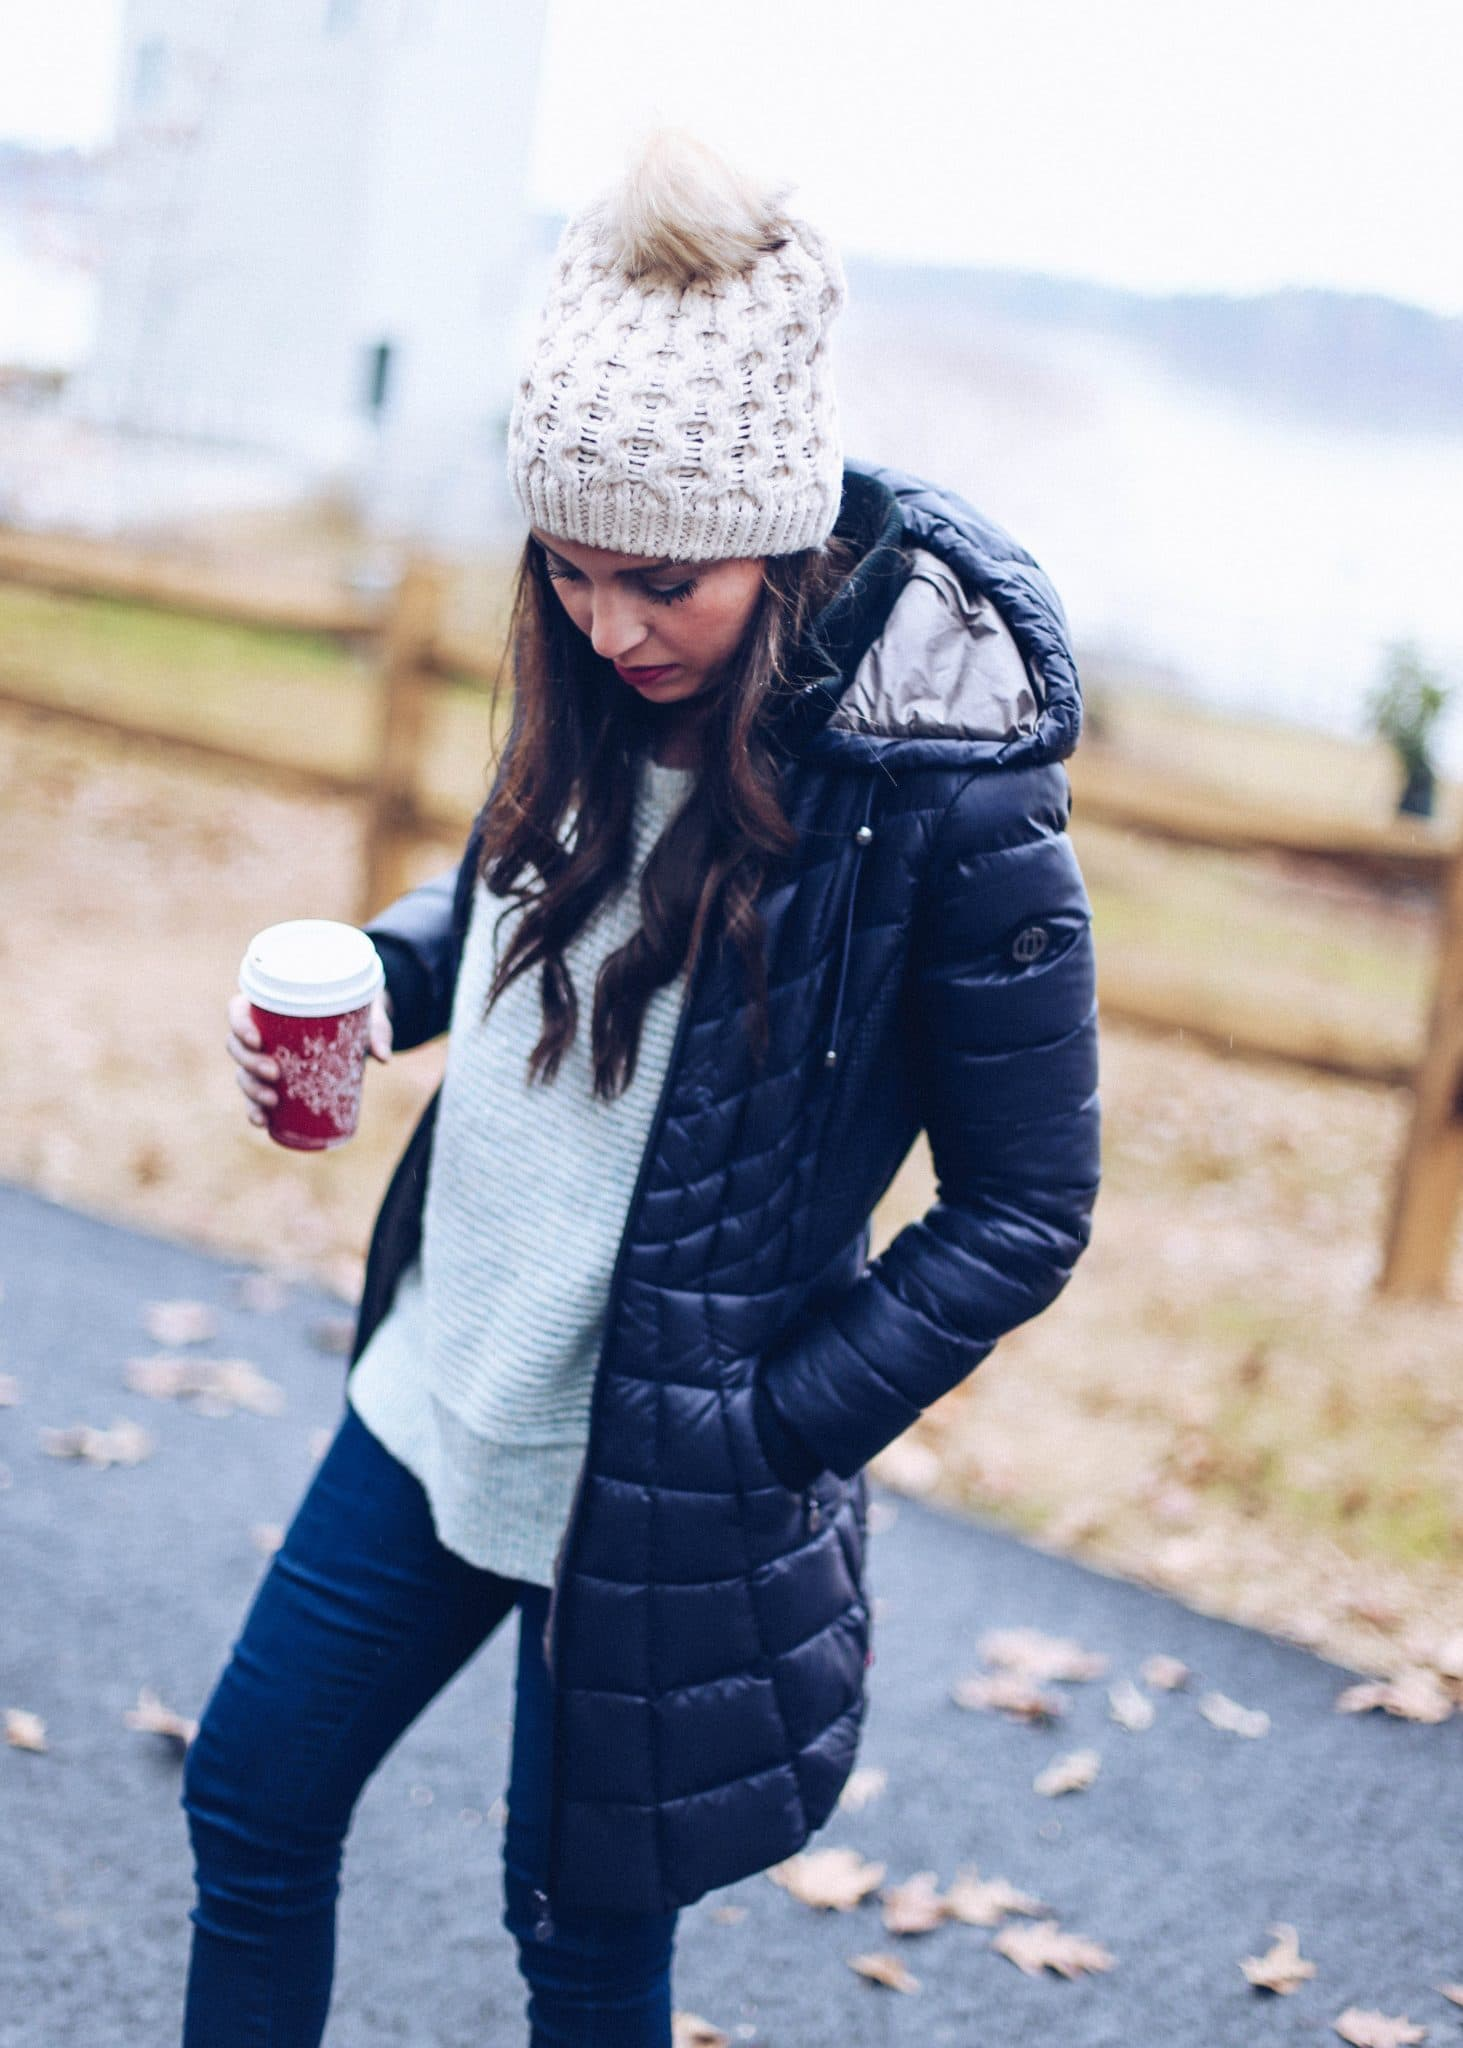 bernardo outerwear, best winter coat, puffer coat women, black nordstrom down coat, pretty in the pines, fashion lifestyle north carolina blog, winter outfit idea